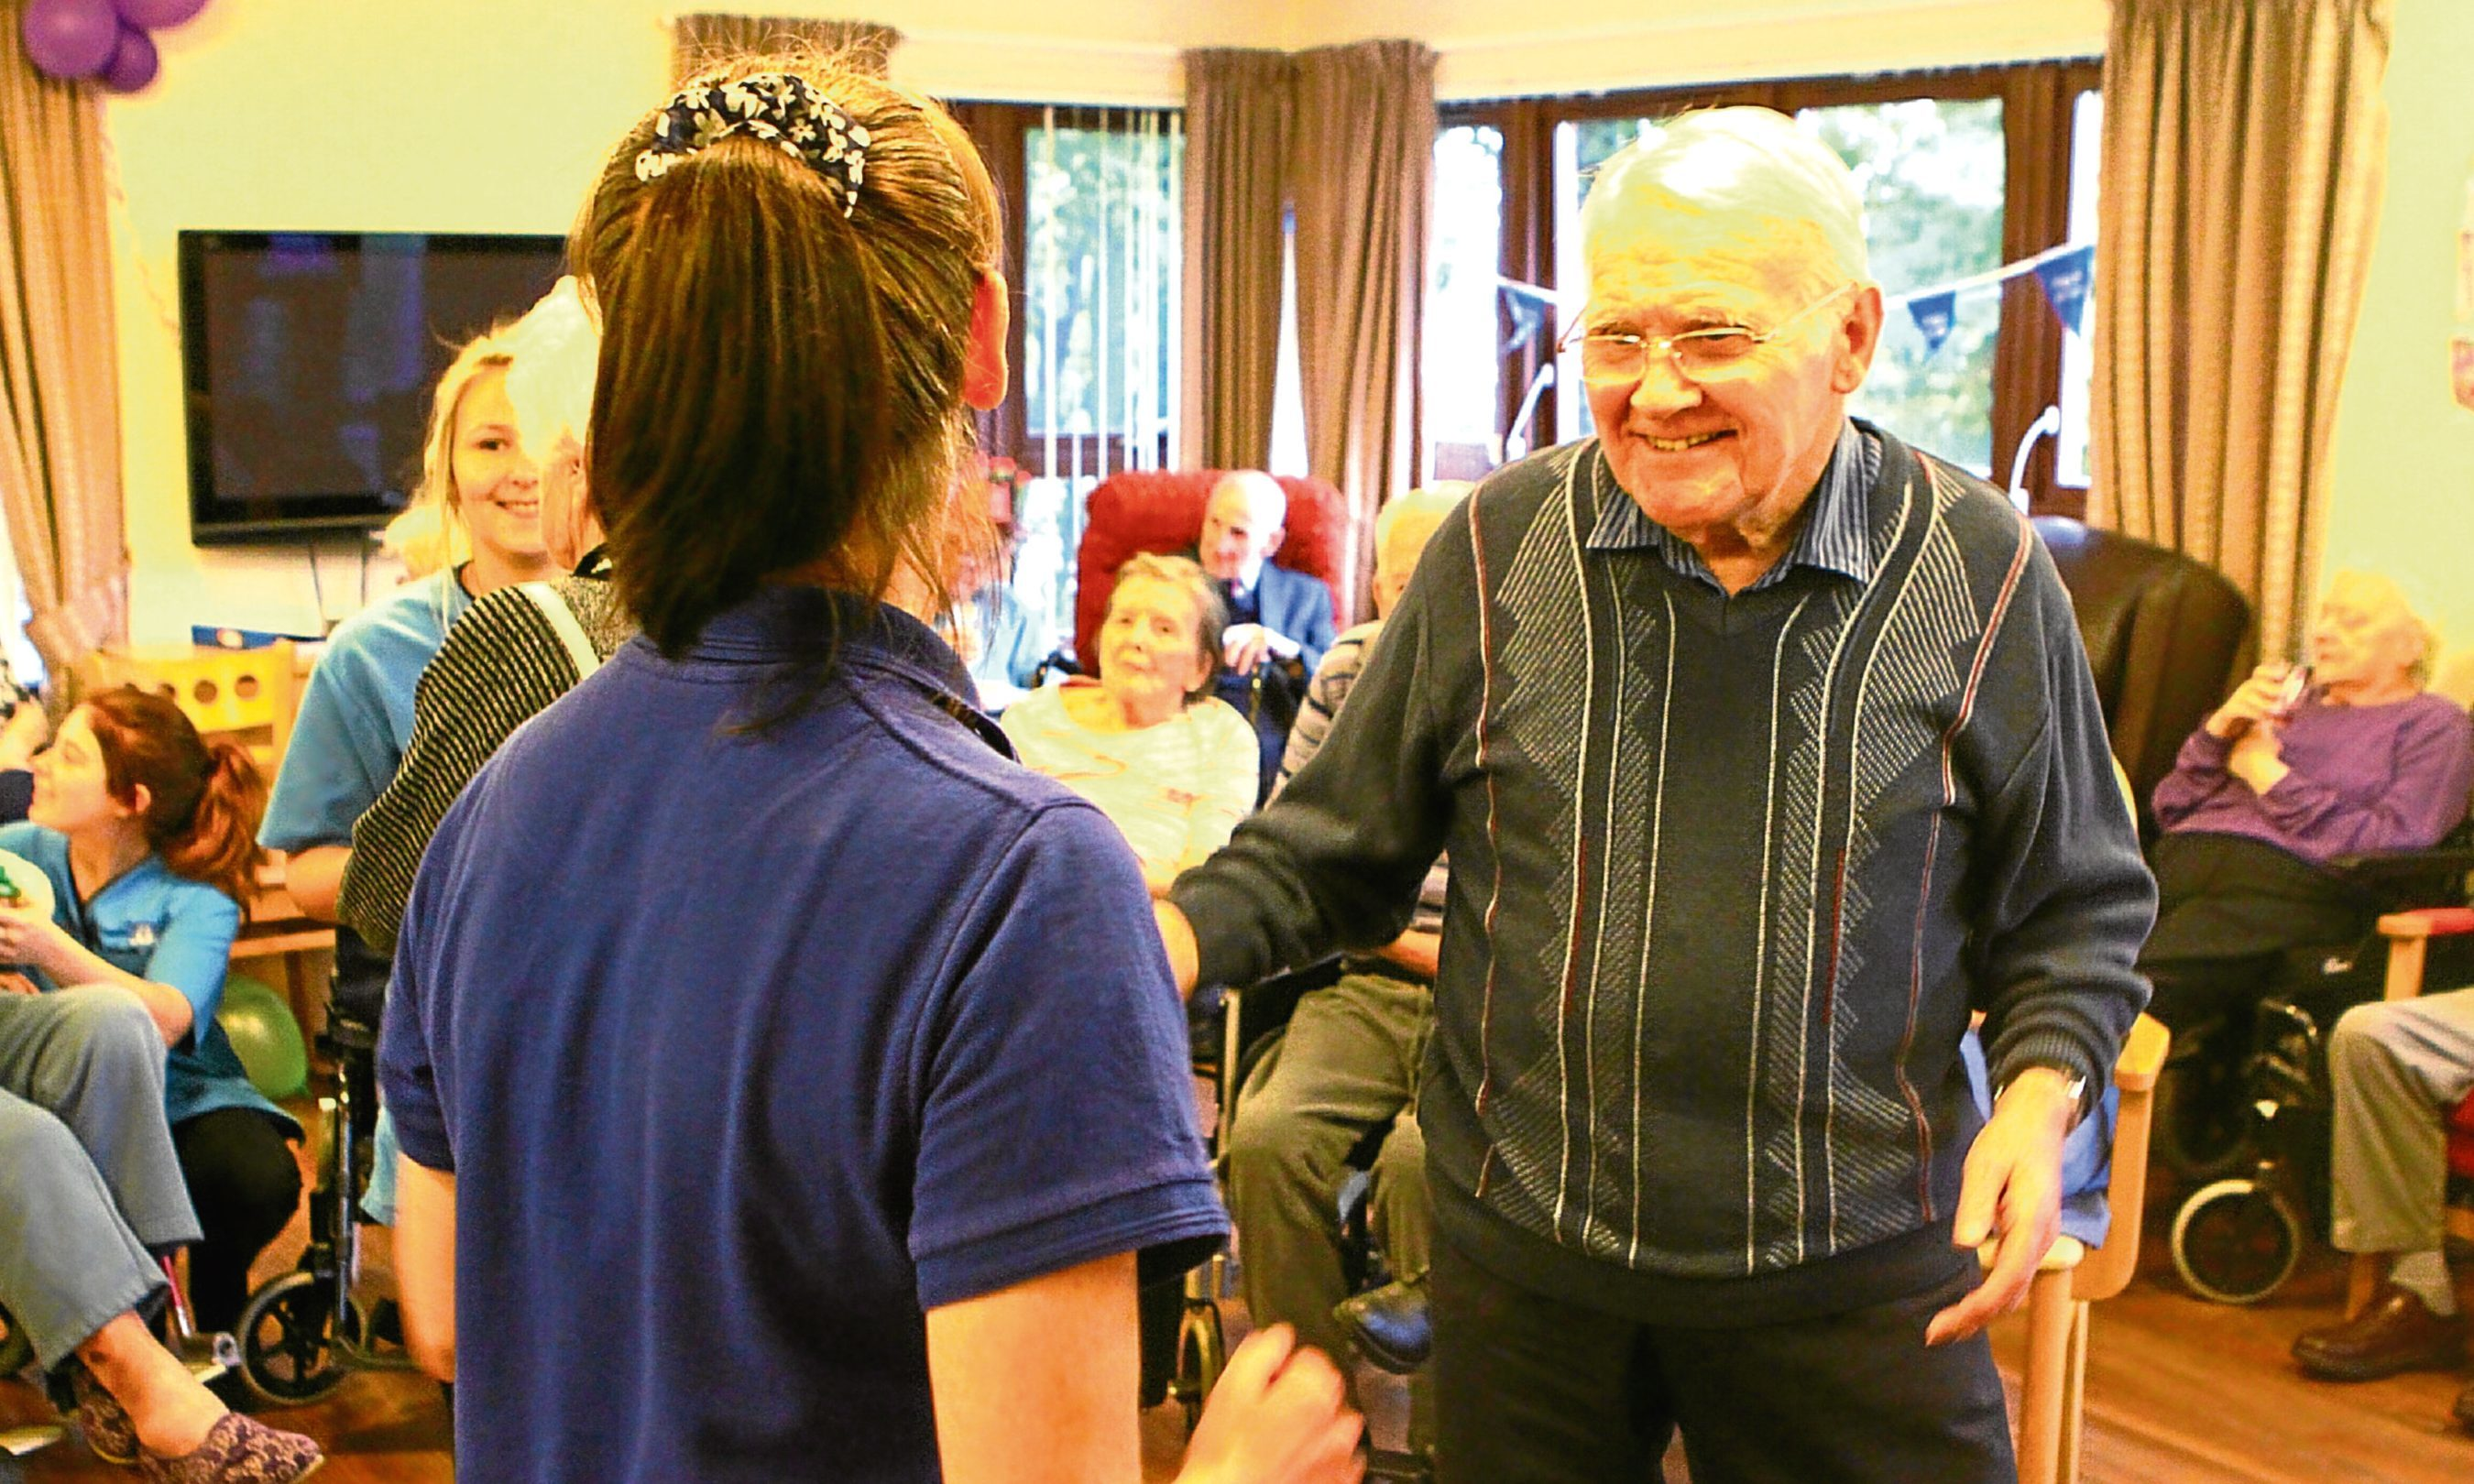 Some of the residents of the Balhousie Antiquary Care Home enjoying their Wednesday afternoon entertainment.